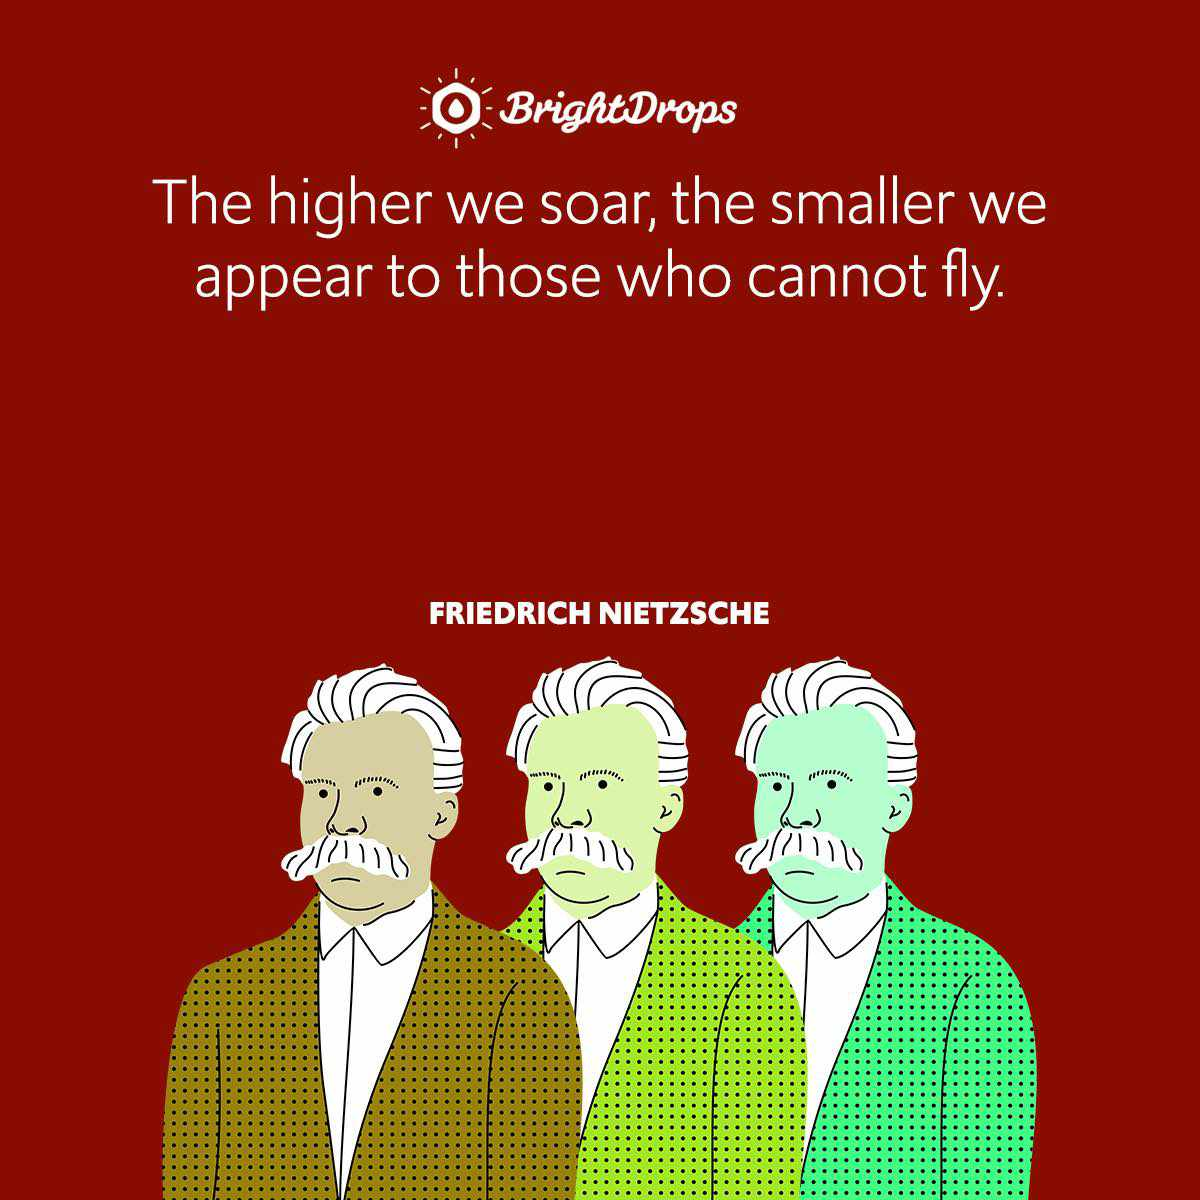 The higher we soar, the smaller we appear to those who cannot fly.